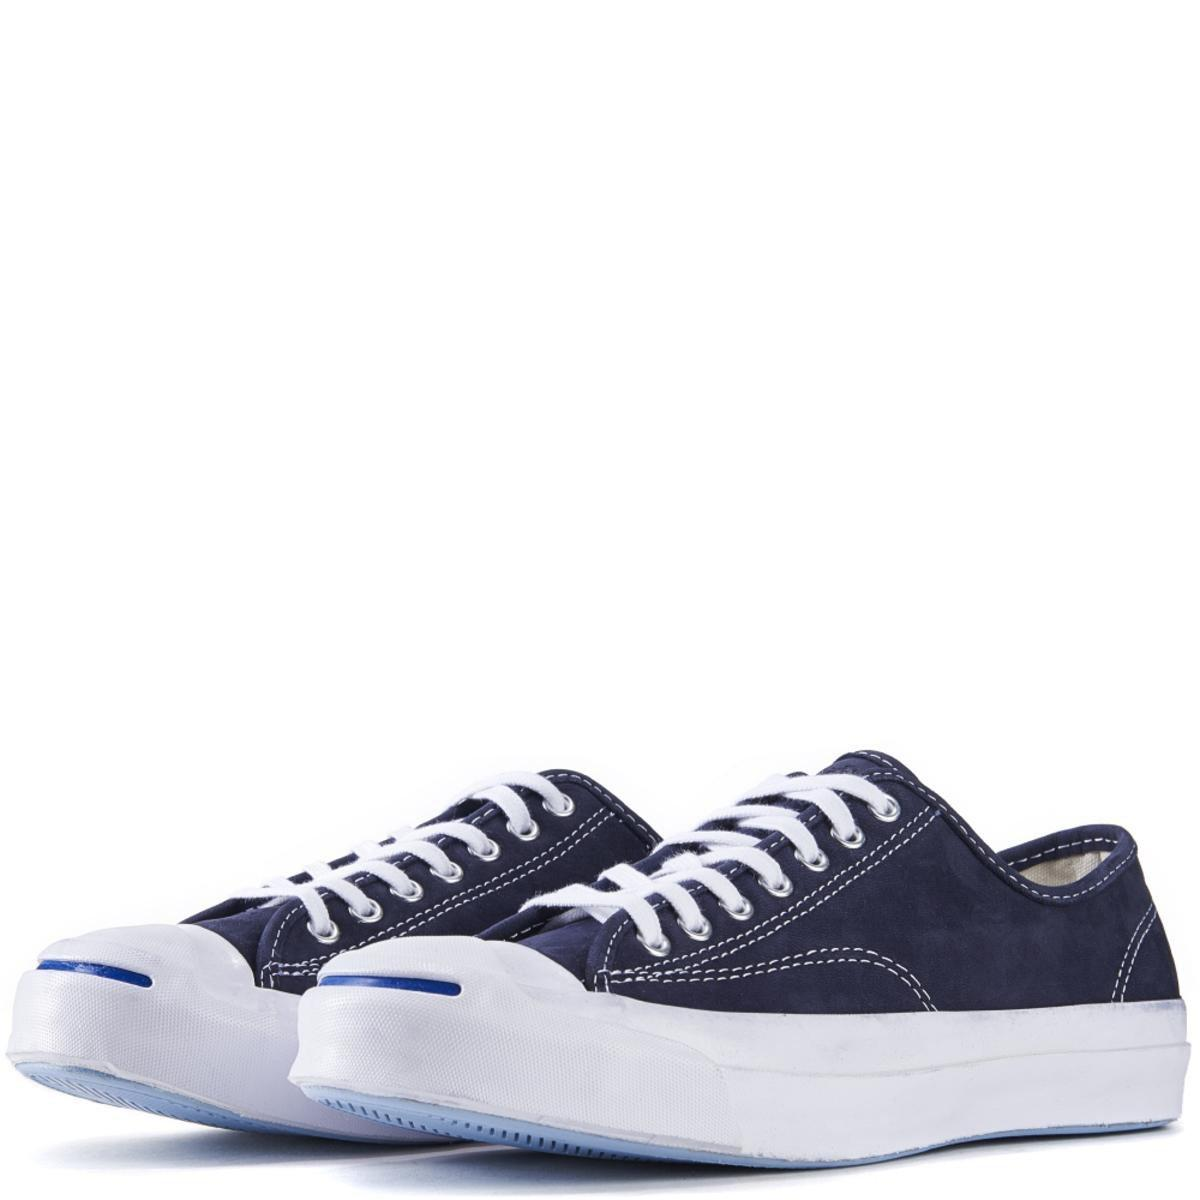 5d830e495eb1 Converse - Blue Jack Purcell Signature Nubuck Inked Sneakers for Men - Lyst.  View fullscreen